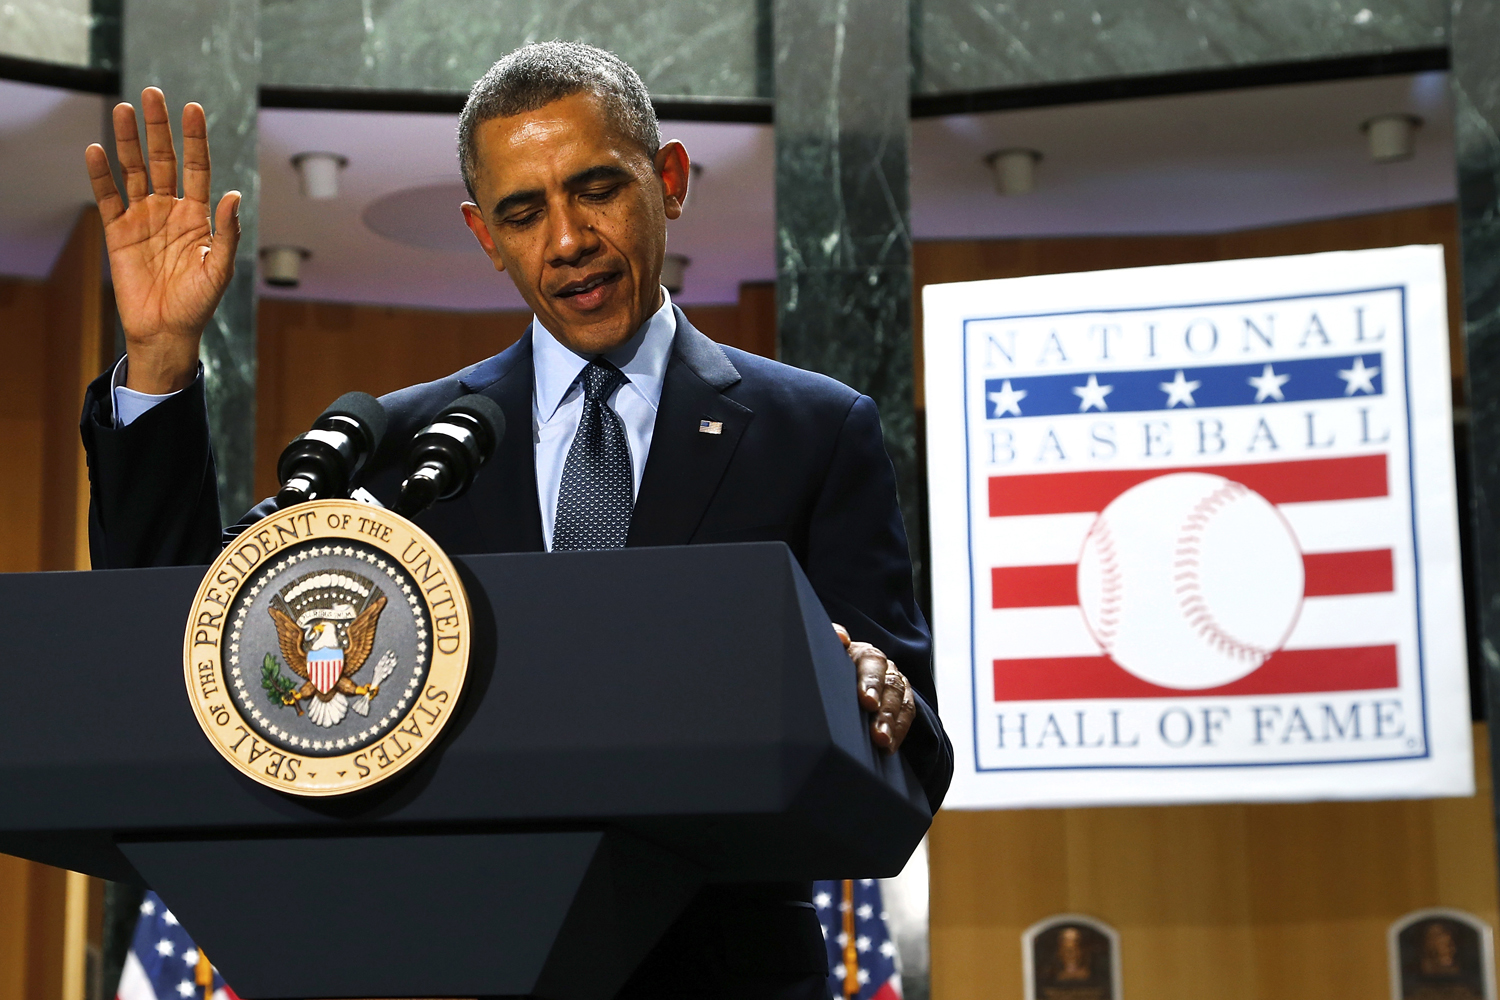 U.S. President Barack Obama delivers remarks at the National Baseball Hall of Fame in Cooperstown, New York, May 22, 2014.